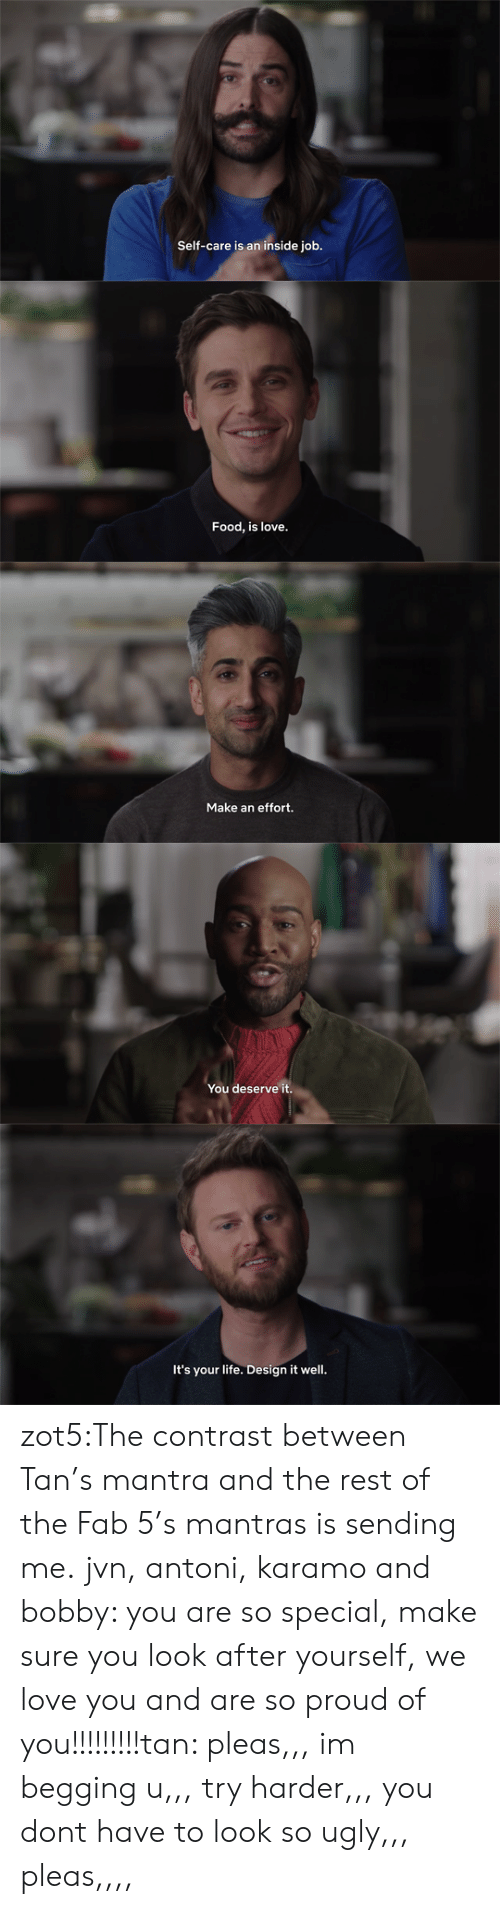 Food, Life, and Love: Self-care is an inside job.   Food, is love.   Make an effort.   You deserve it.   It's your life. Design it well. zot5:The contrast between Tan's mantra and the rest of the Fab 5's mantras is sending me.  jvn, antoni, karamo and bobby: you are so special, make sure you look after yourself, we love you and are so proud of you!!!!!!!!!tan: pleas,,, im begging u,,, try harder,,, you dont have to look so ugly,,, pleas,,,,